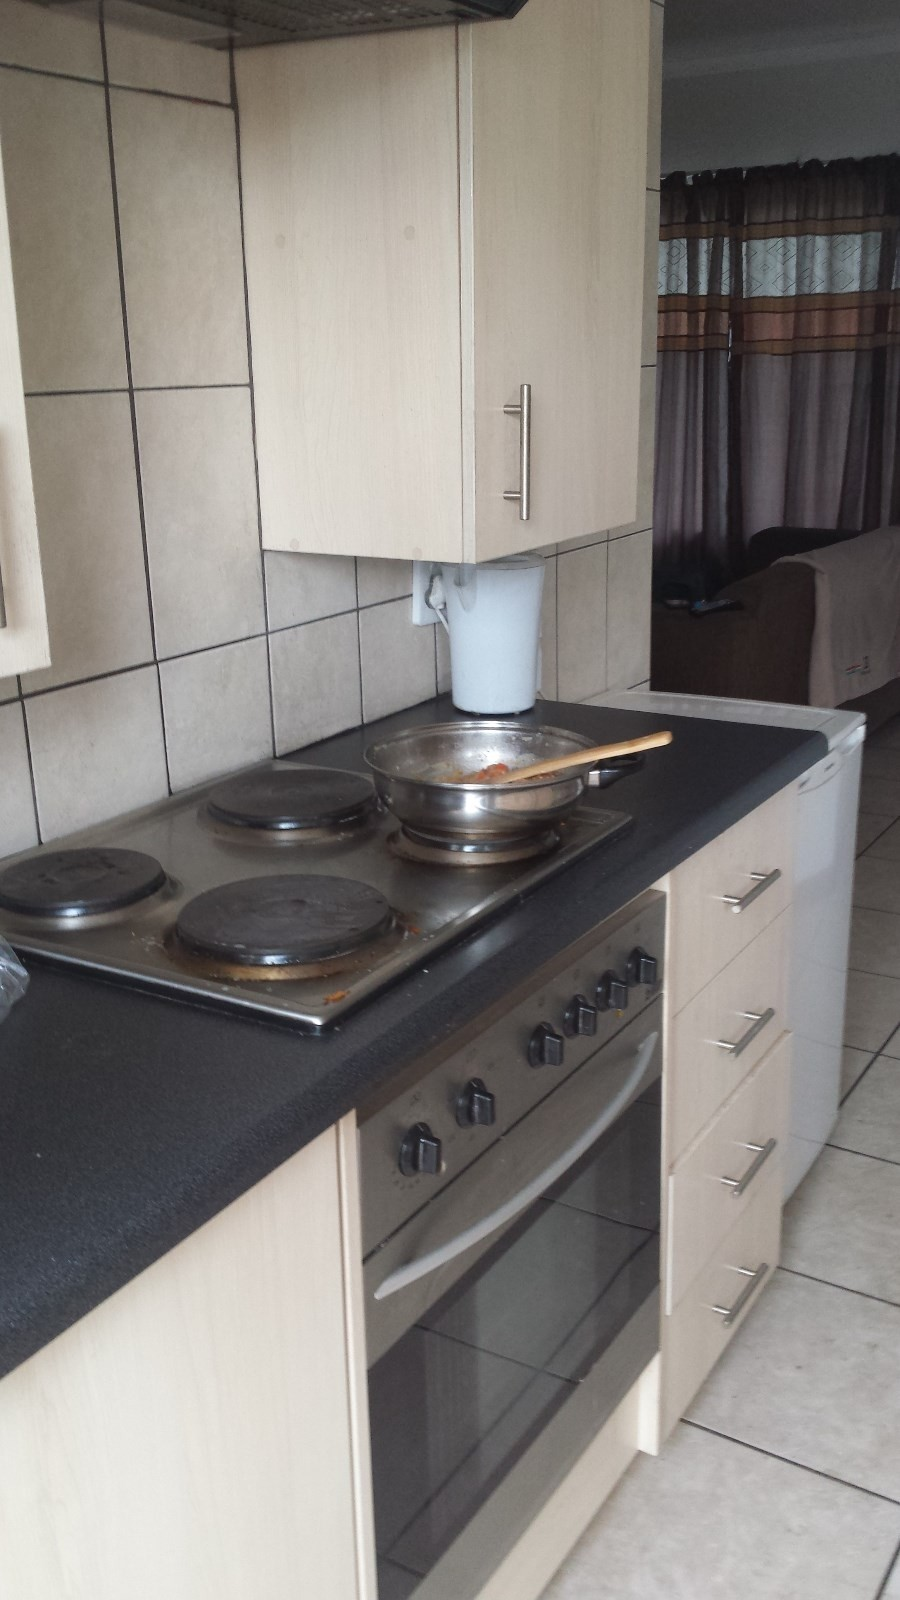 Potchefstroom Central property for sale. Ref No: 12784733. Picture no 5